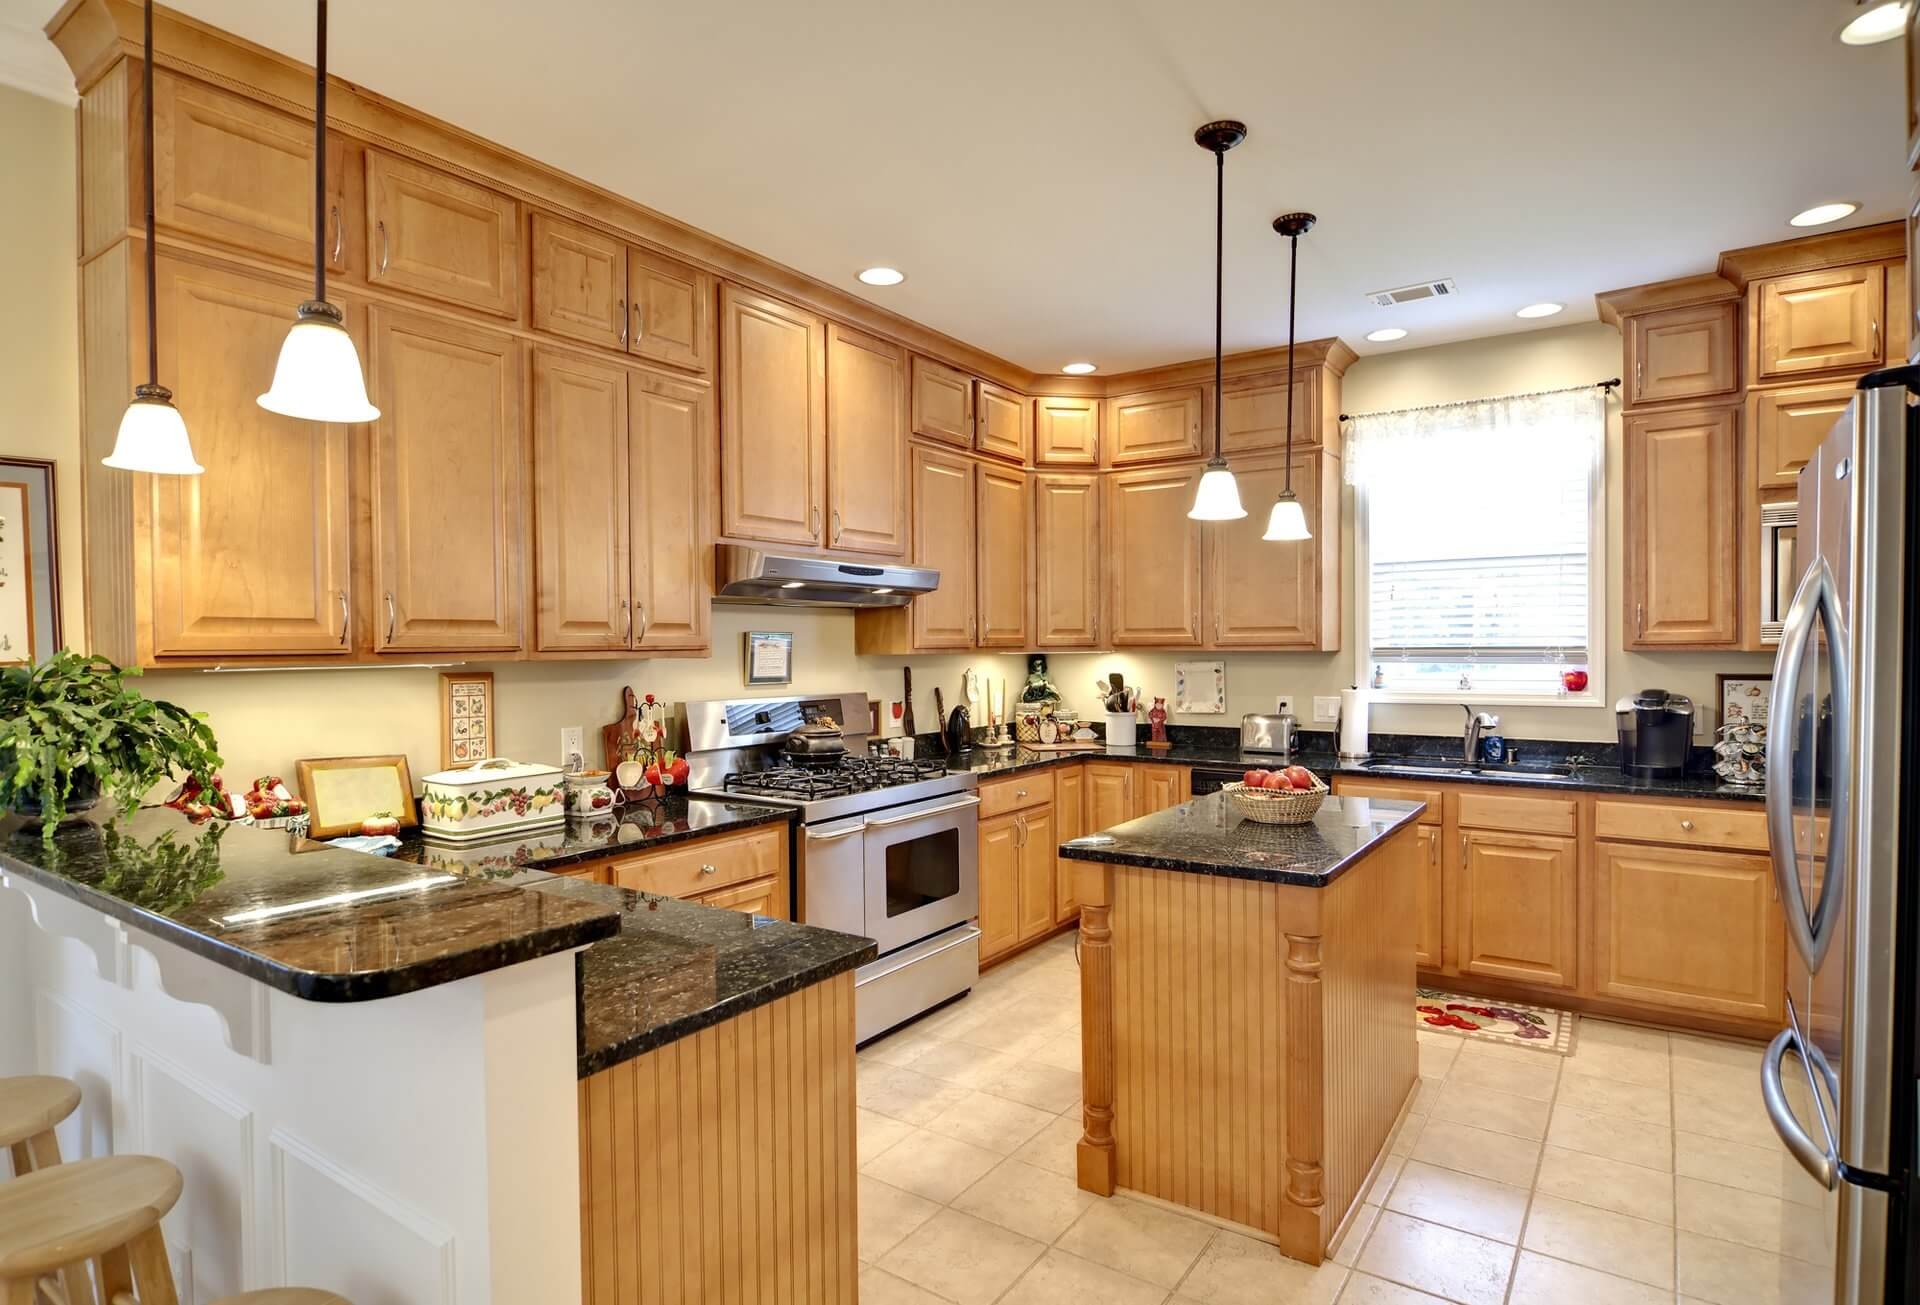 kitchen design rochester ny. Kitchen Renovation Rochester  NY New Design Custom Cabinet Installation Cabinets Upgrades